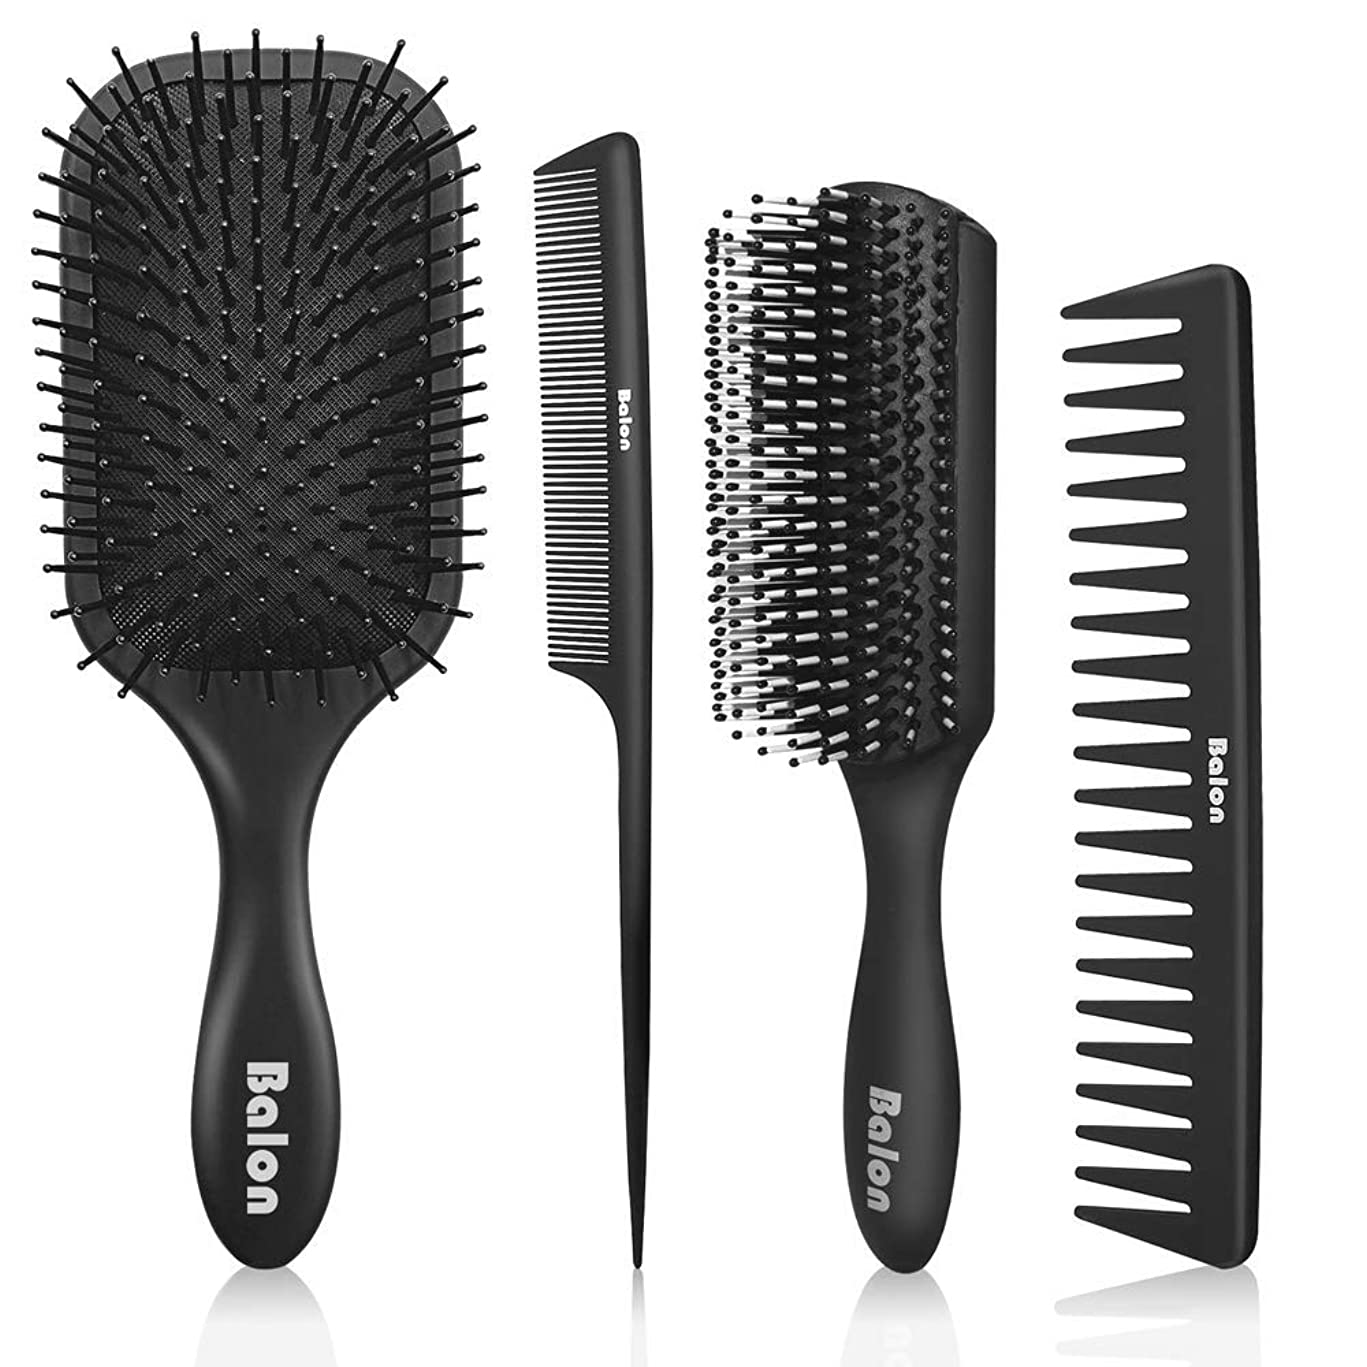 4Pcs Paddle Hair Brush, Detangling Brush and Hair Comb Set for Men and Women, Great On Wet or Dry Hair, No More Tangle Hairbrush for Long Thick Thin Curly Natural Hair (Black) uzptg80783049